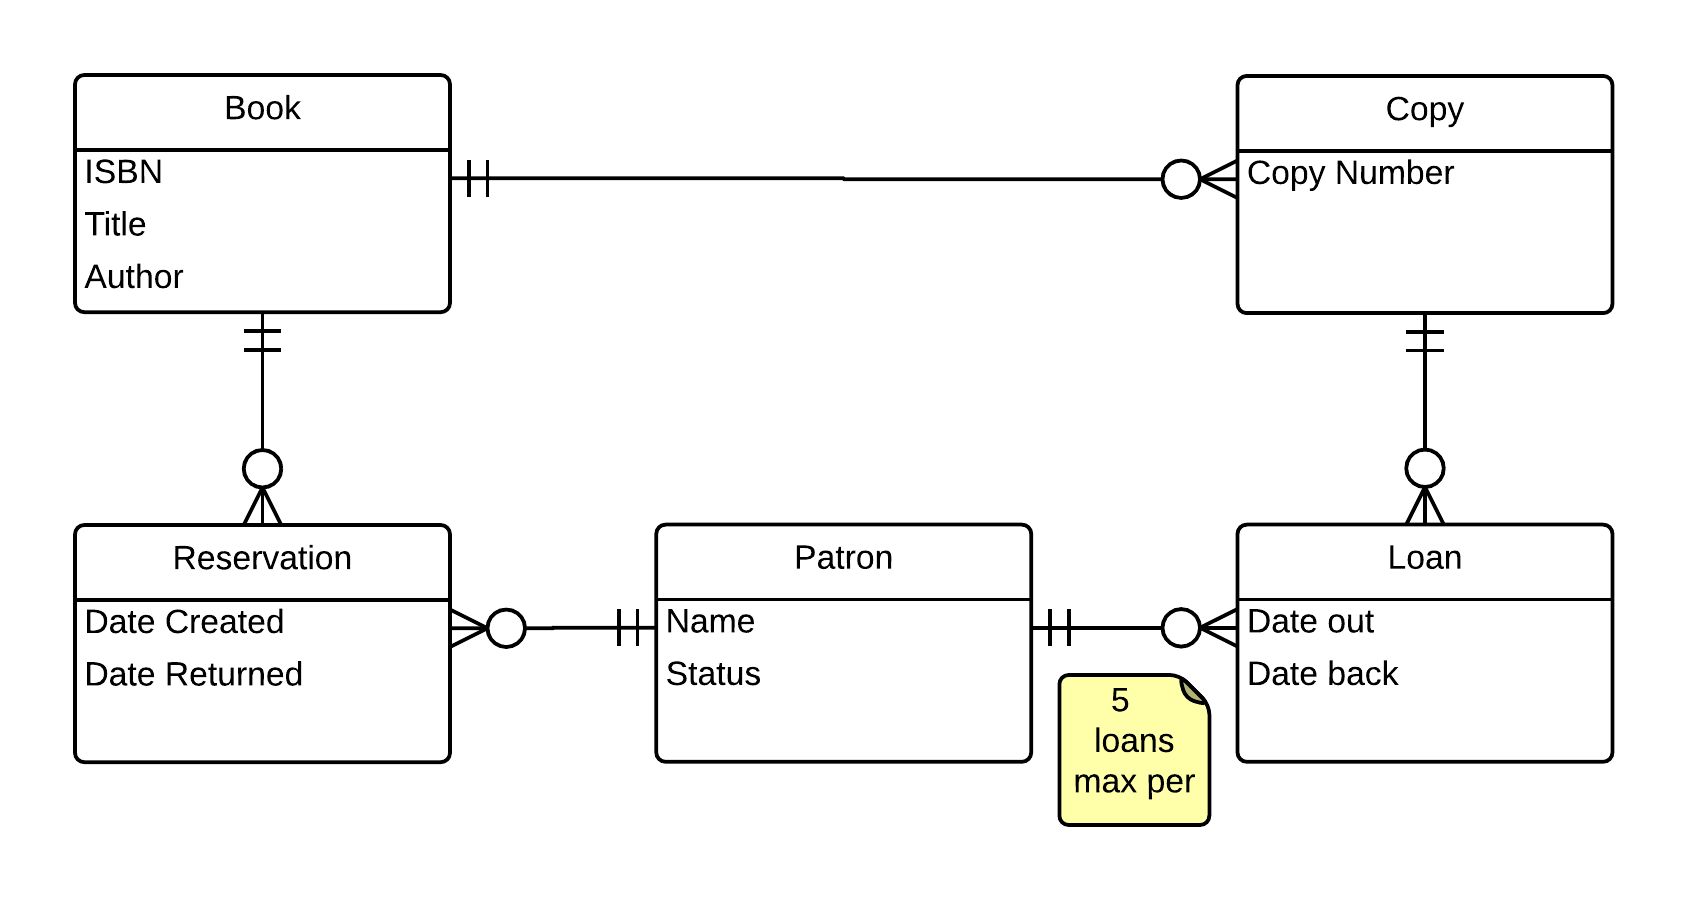 loan company er diagram typical ignition switch wiring data design modeling diagrams eric wu